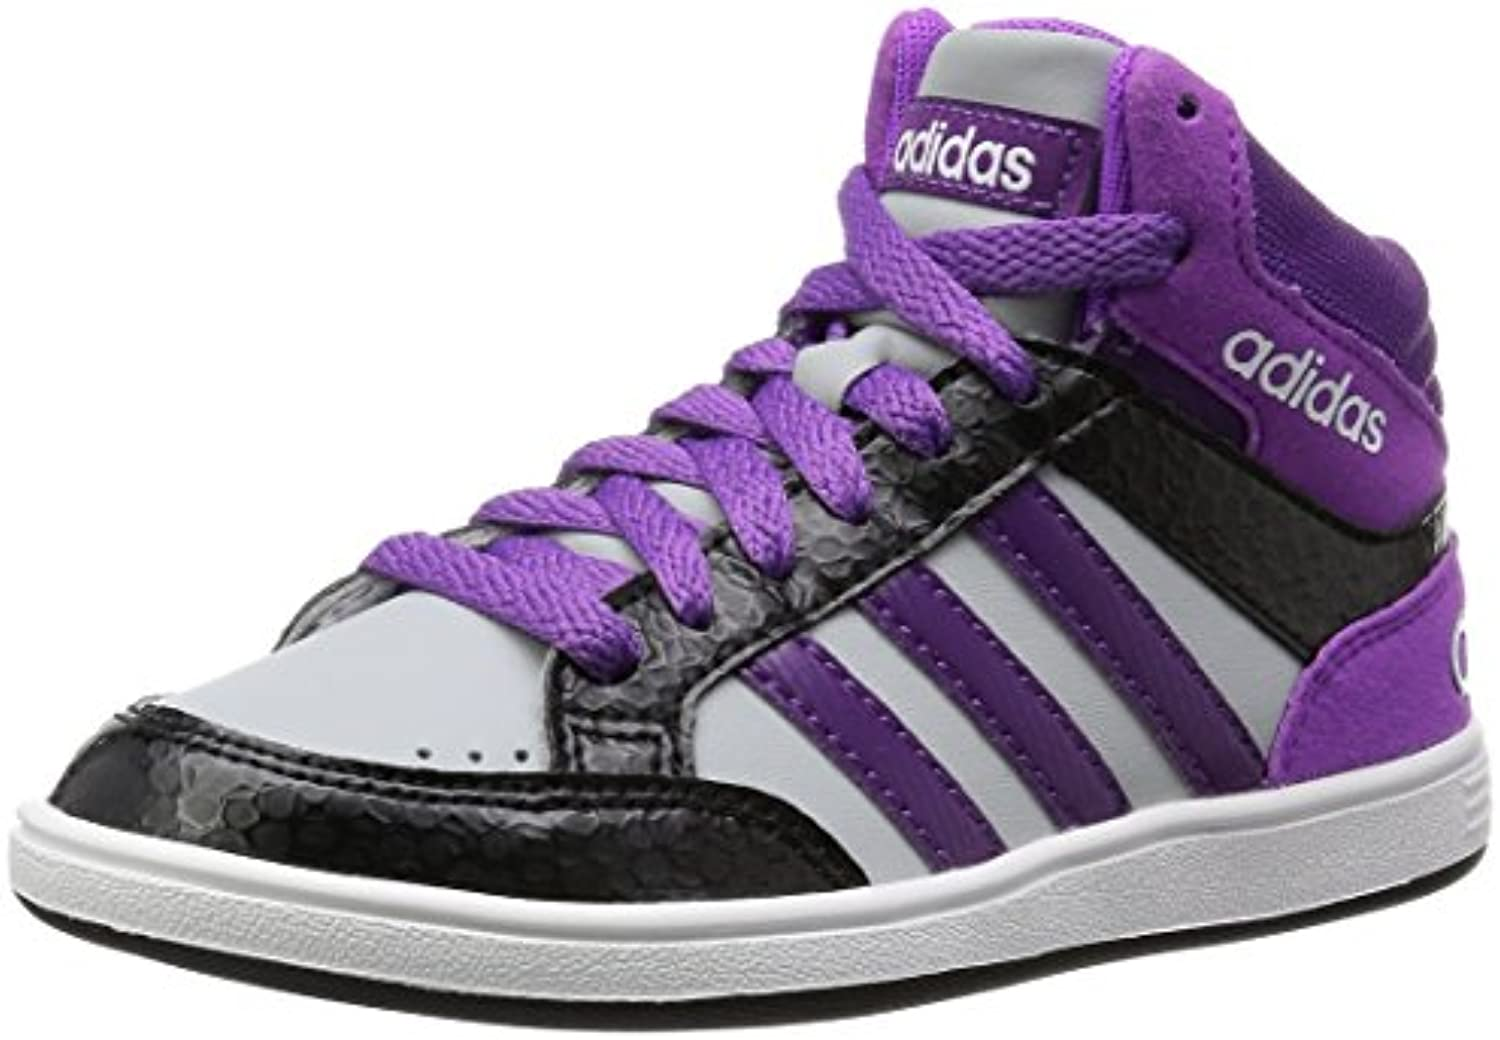 info for e23d7 16514 adidas hoops mi k aw5130 couleur  noir violet blanc taille  taille  taille   5,0 0db102